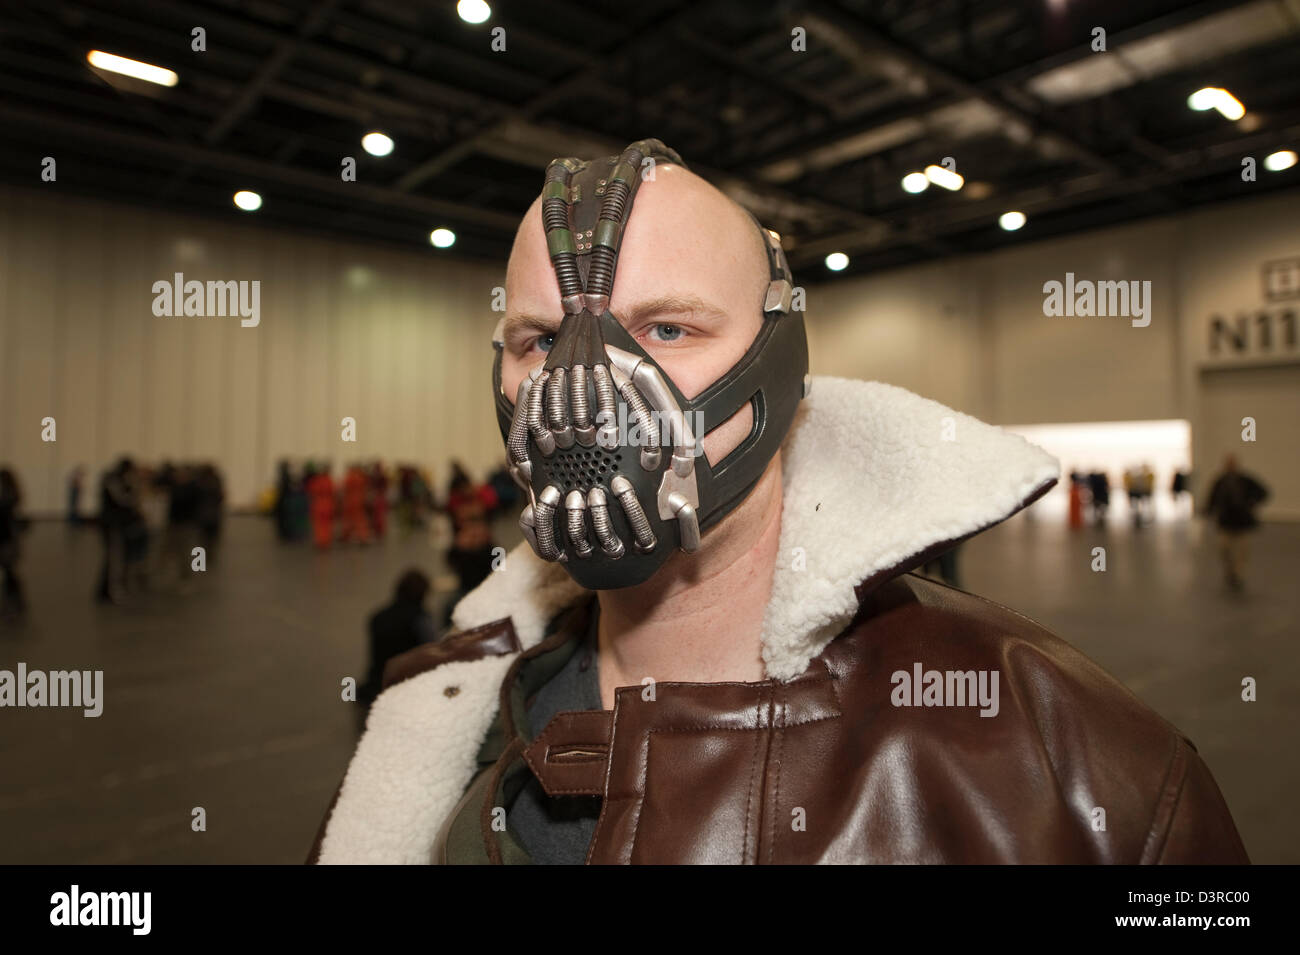 23rd February 2013 London UK. Many visitors to the London Super Comic Convention & Bane Costume Stock Photos u0026 Bane Costume Stock Images - Alamy